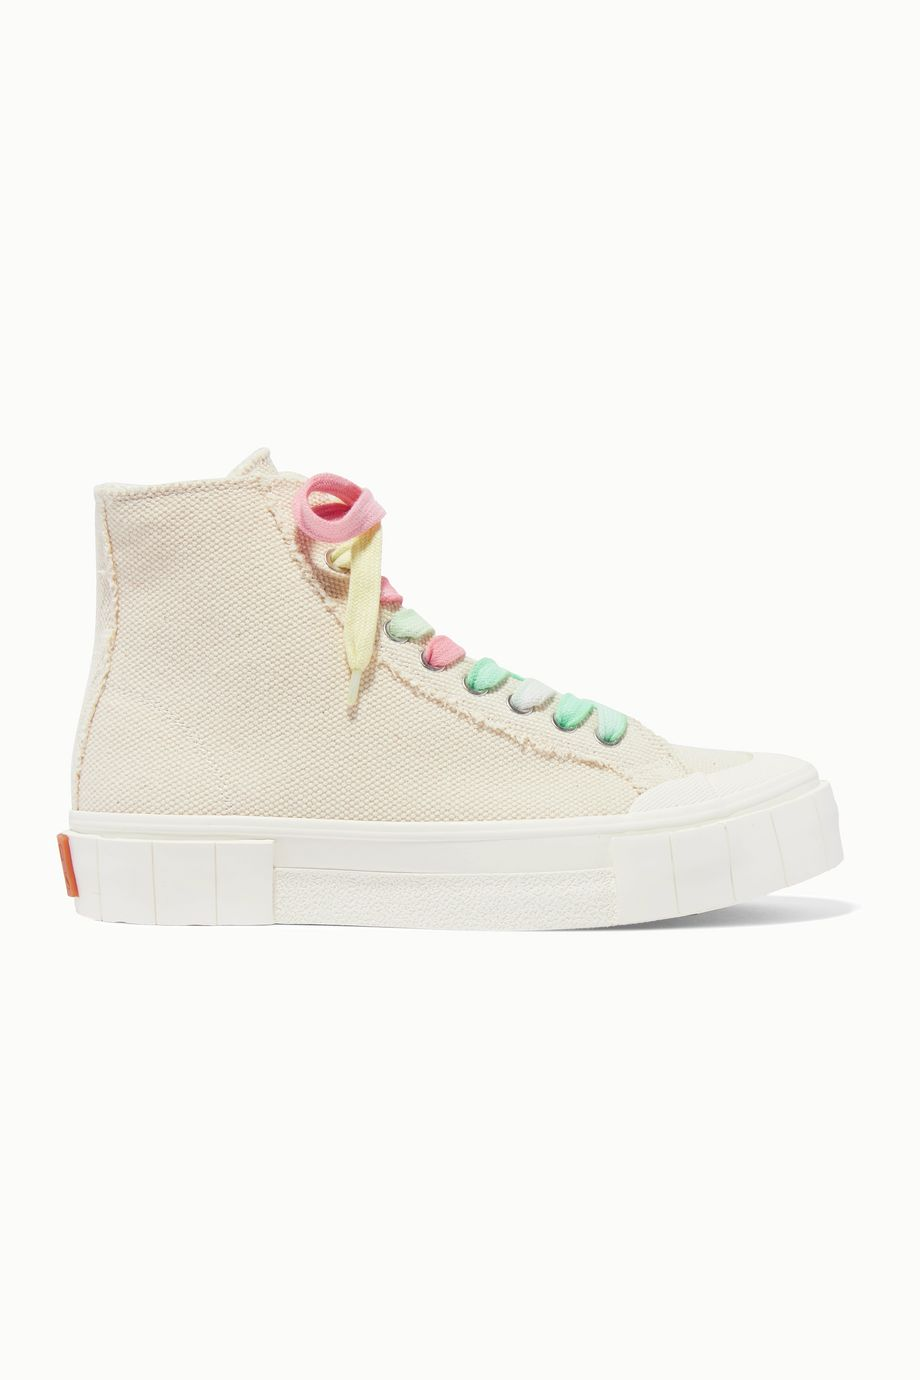 GOOD NEWS + NET SUSTAIN organic cotton-canvas high-top sneakers